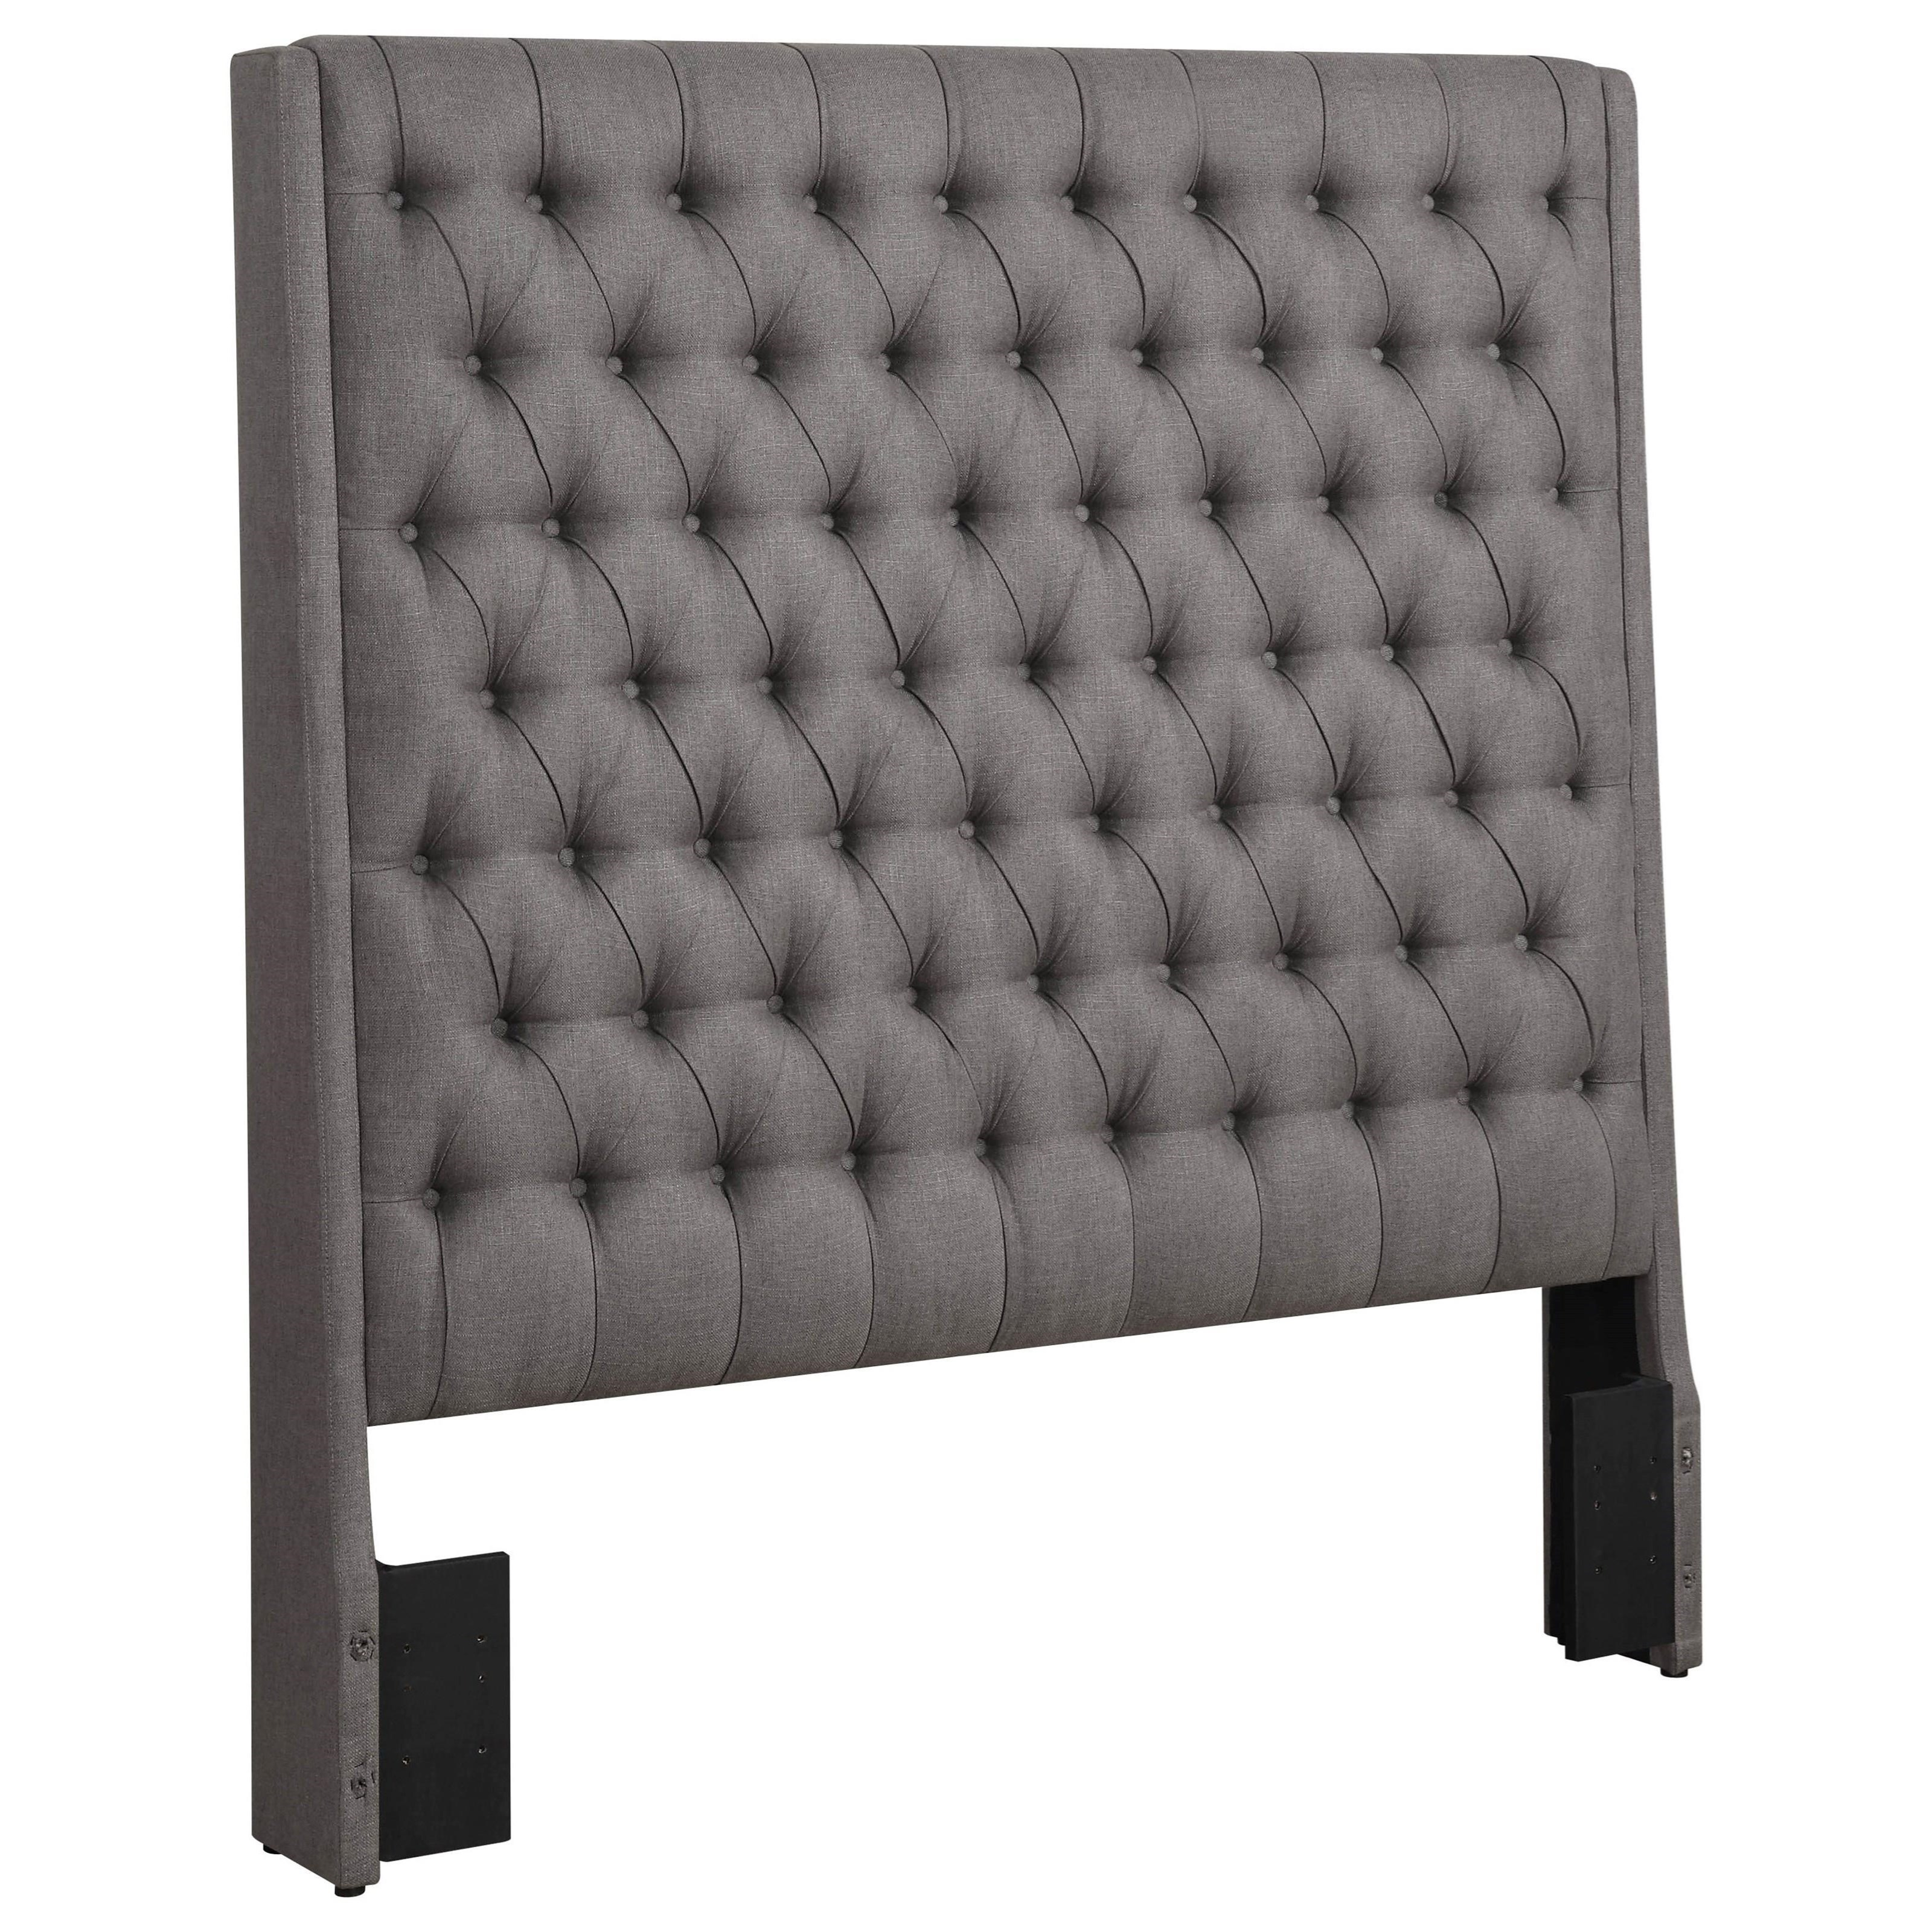 upholstered beds queen bed headboard shown may not represent size indicated - Upholstered Queen Bed